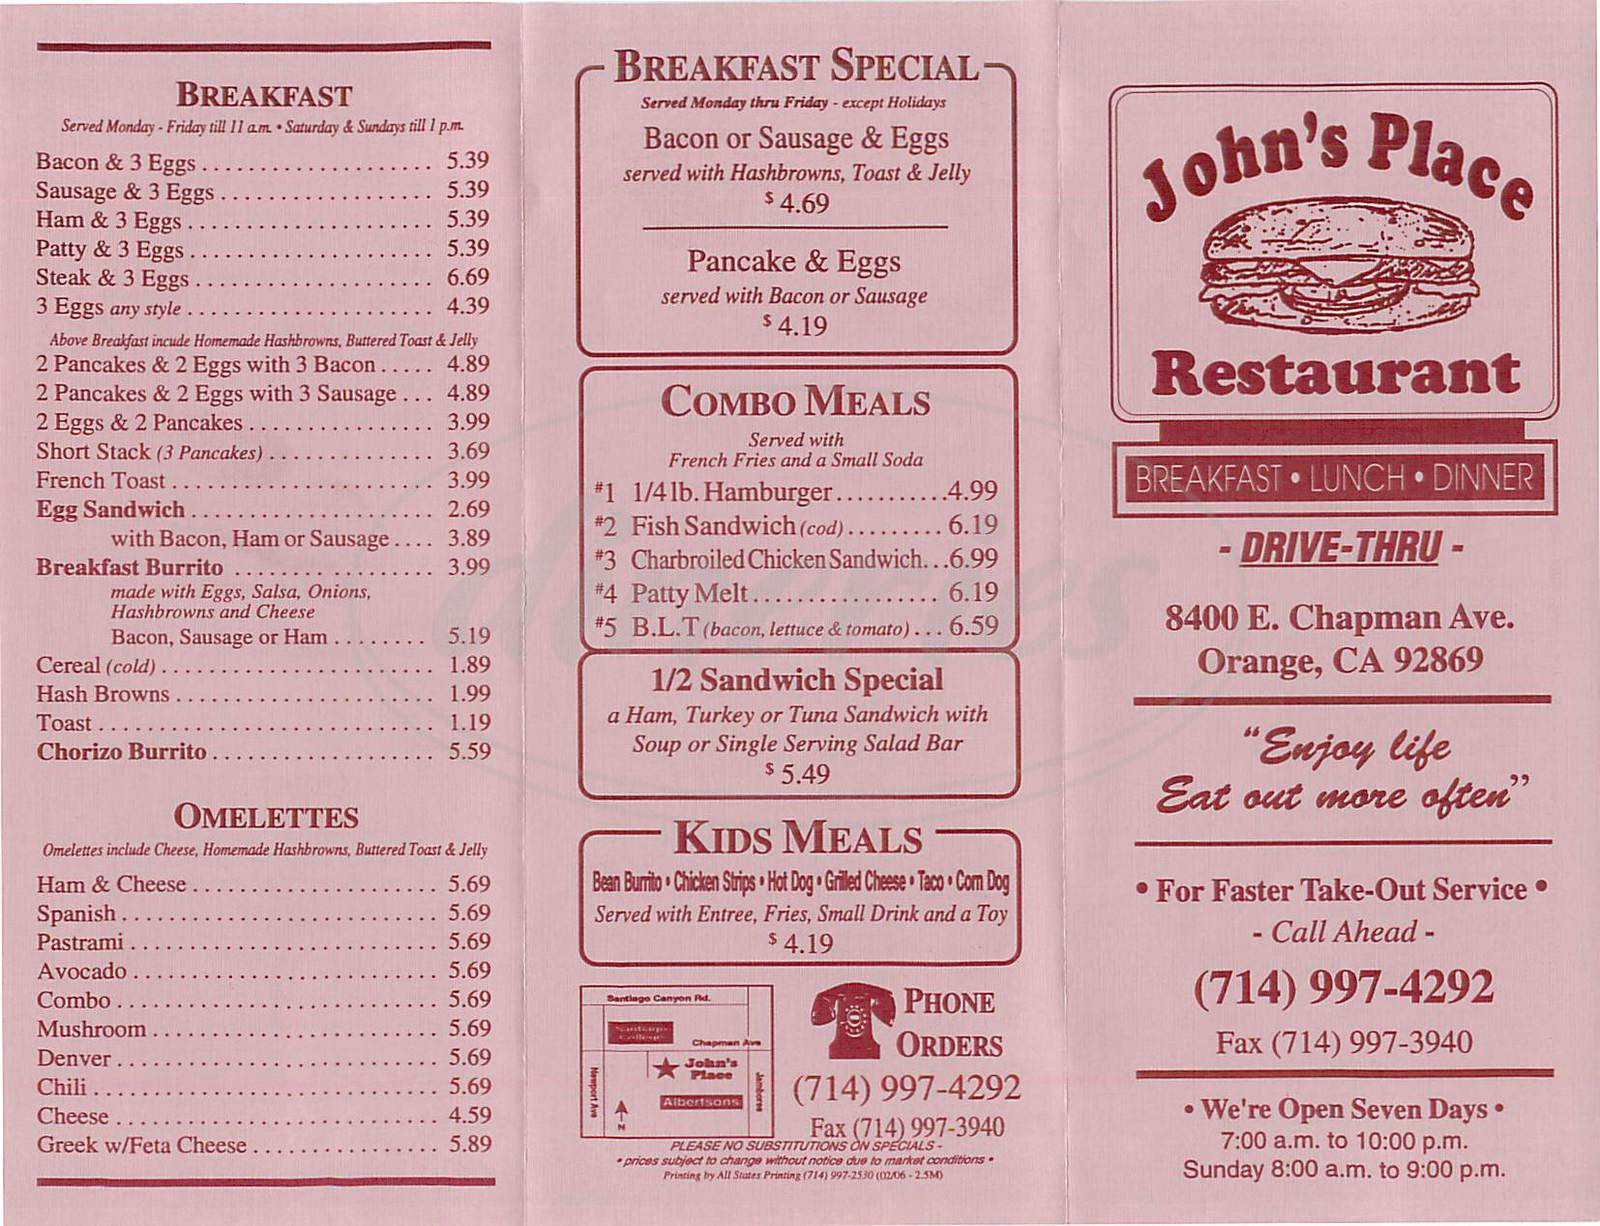 menu for Johns Place